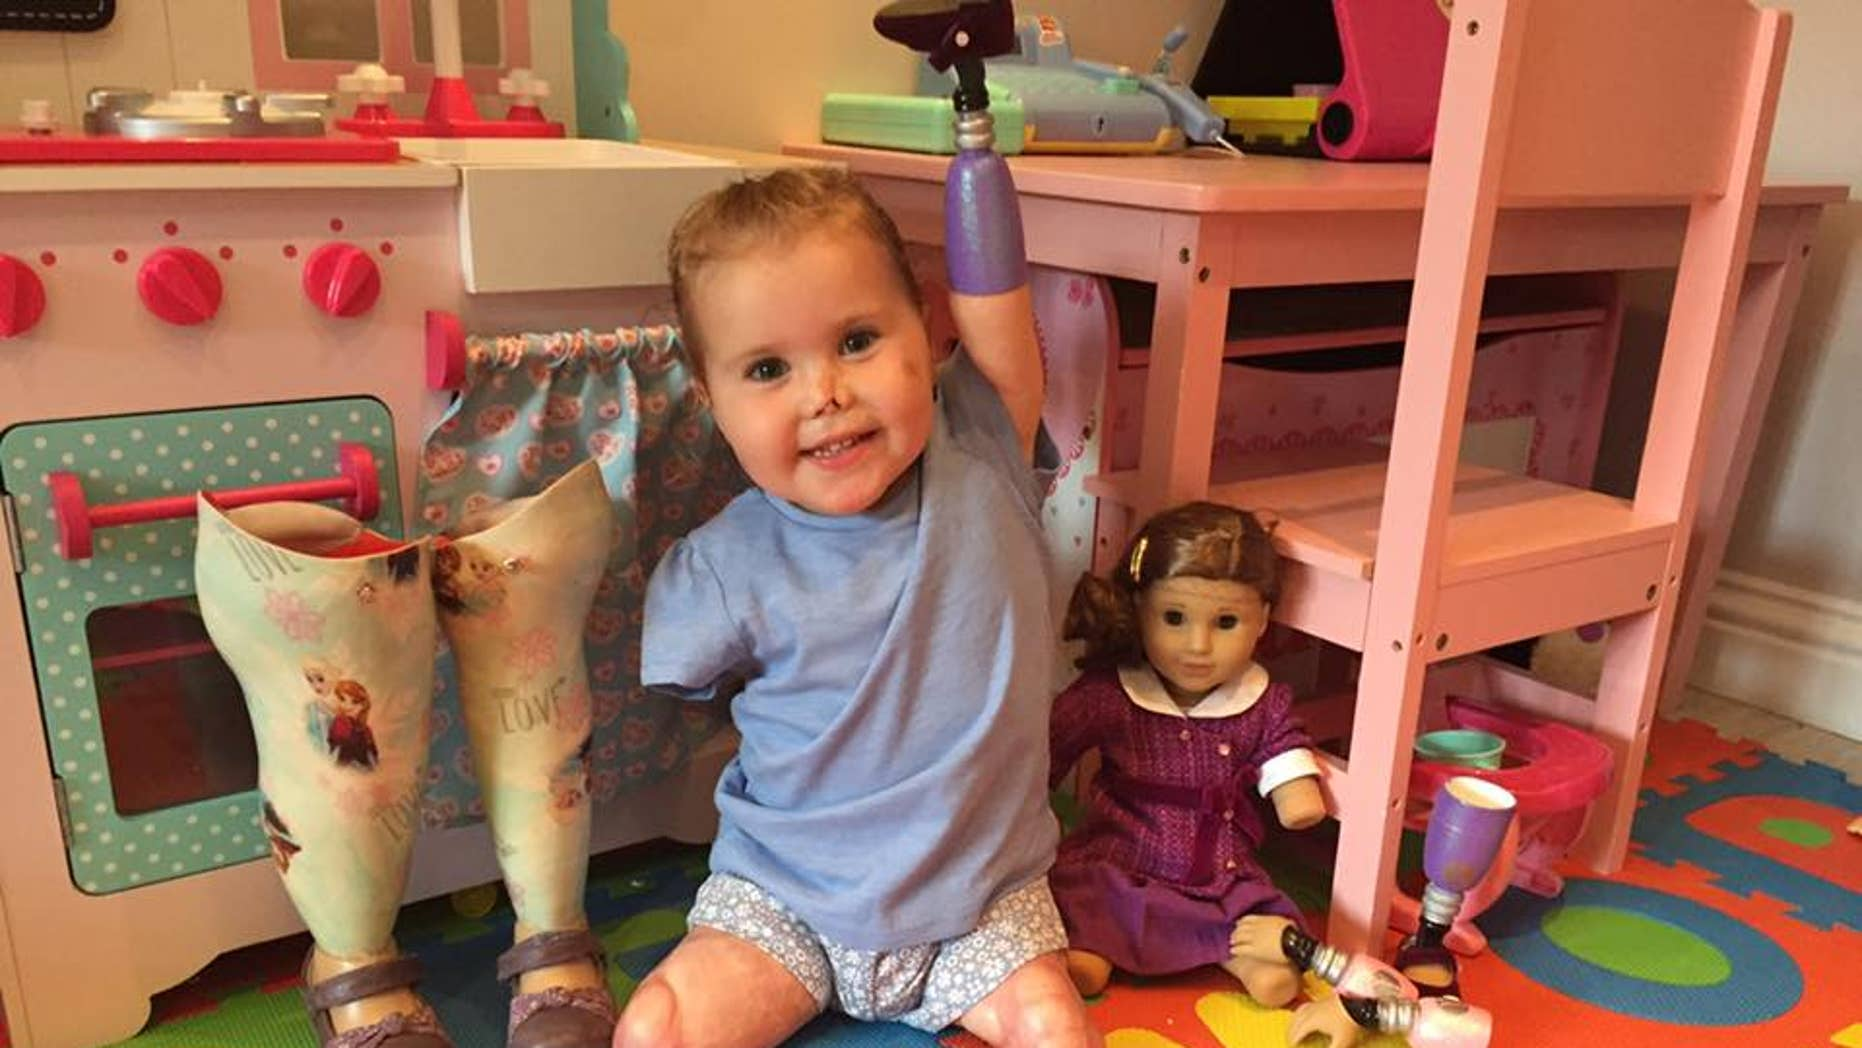 Harmonie poses with her new doll.